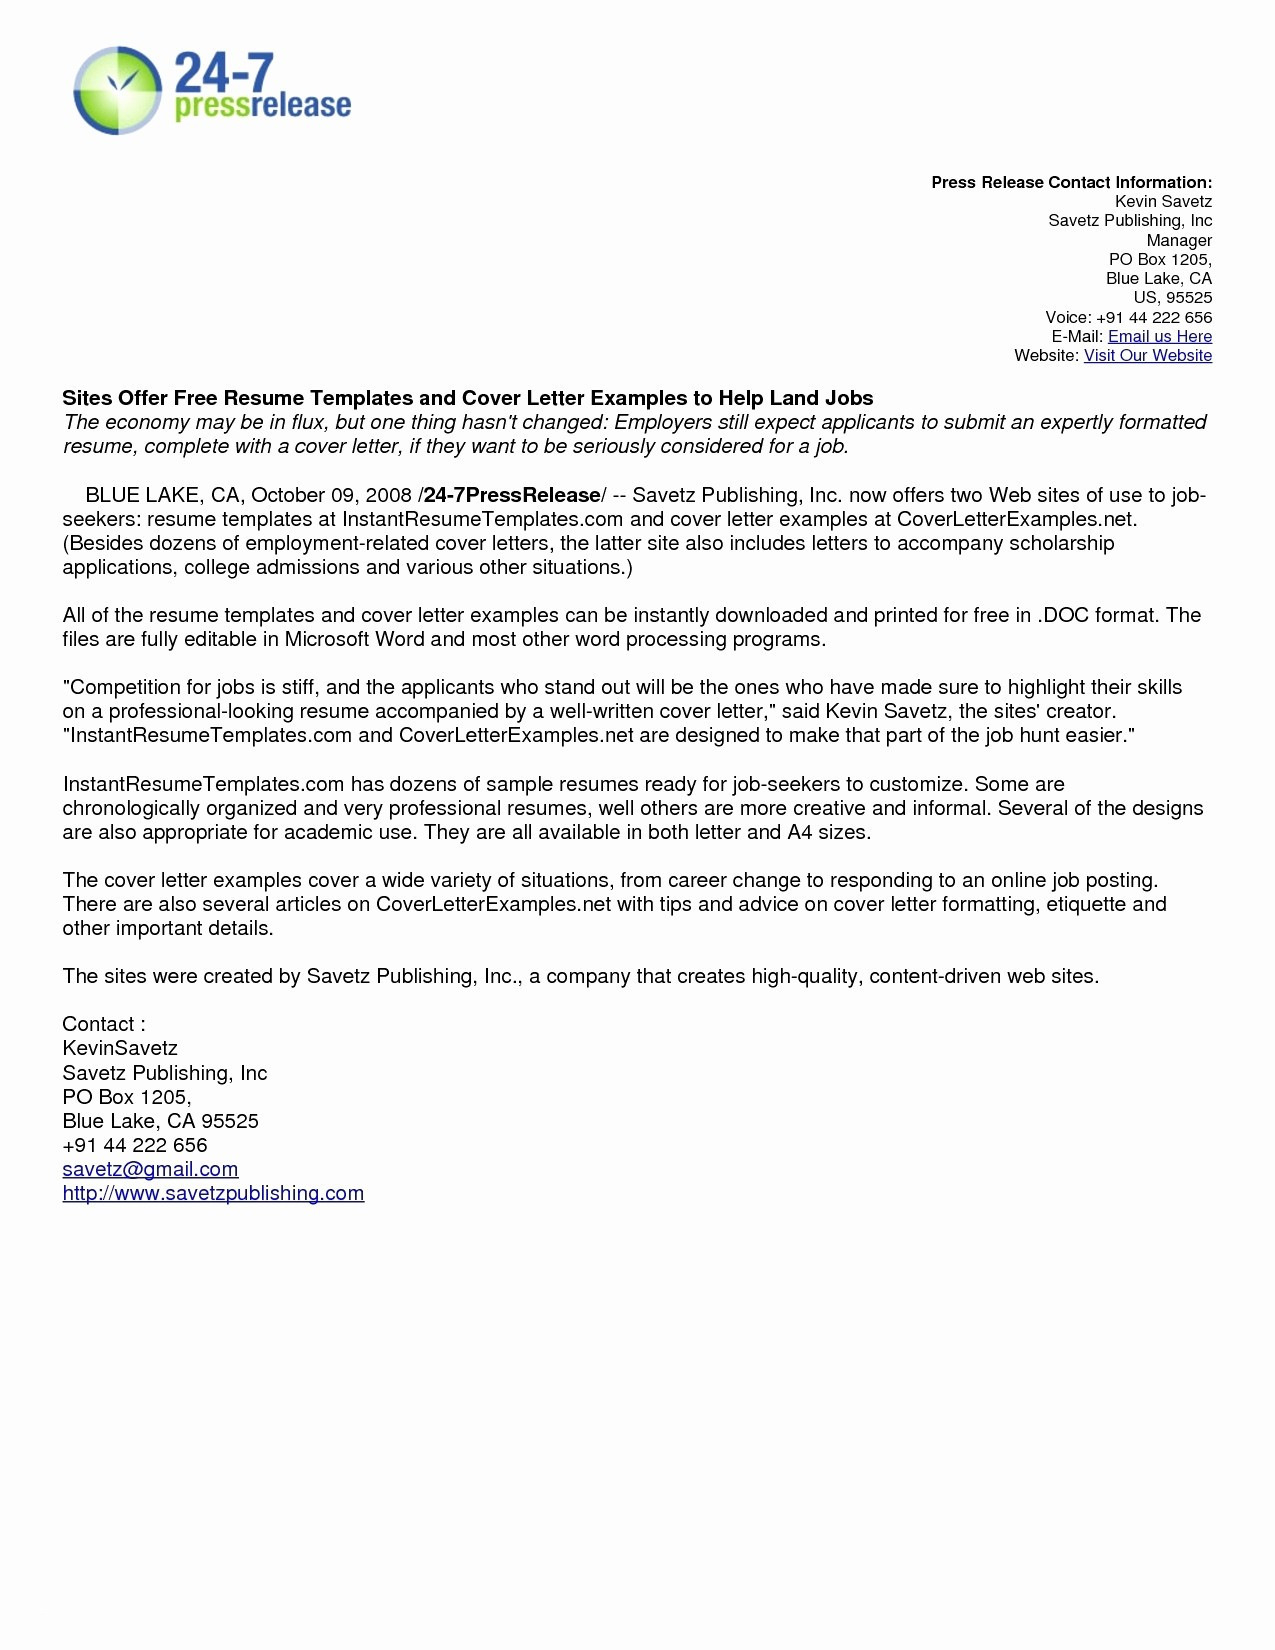 Business Cover Letter Template Microsoft Word - Free Resume Writing Inspirational Free Resume Examples Fresh